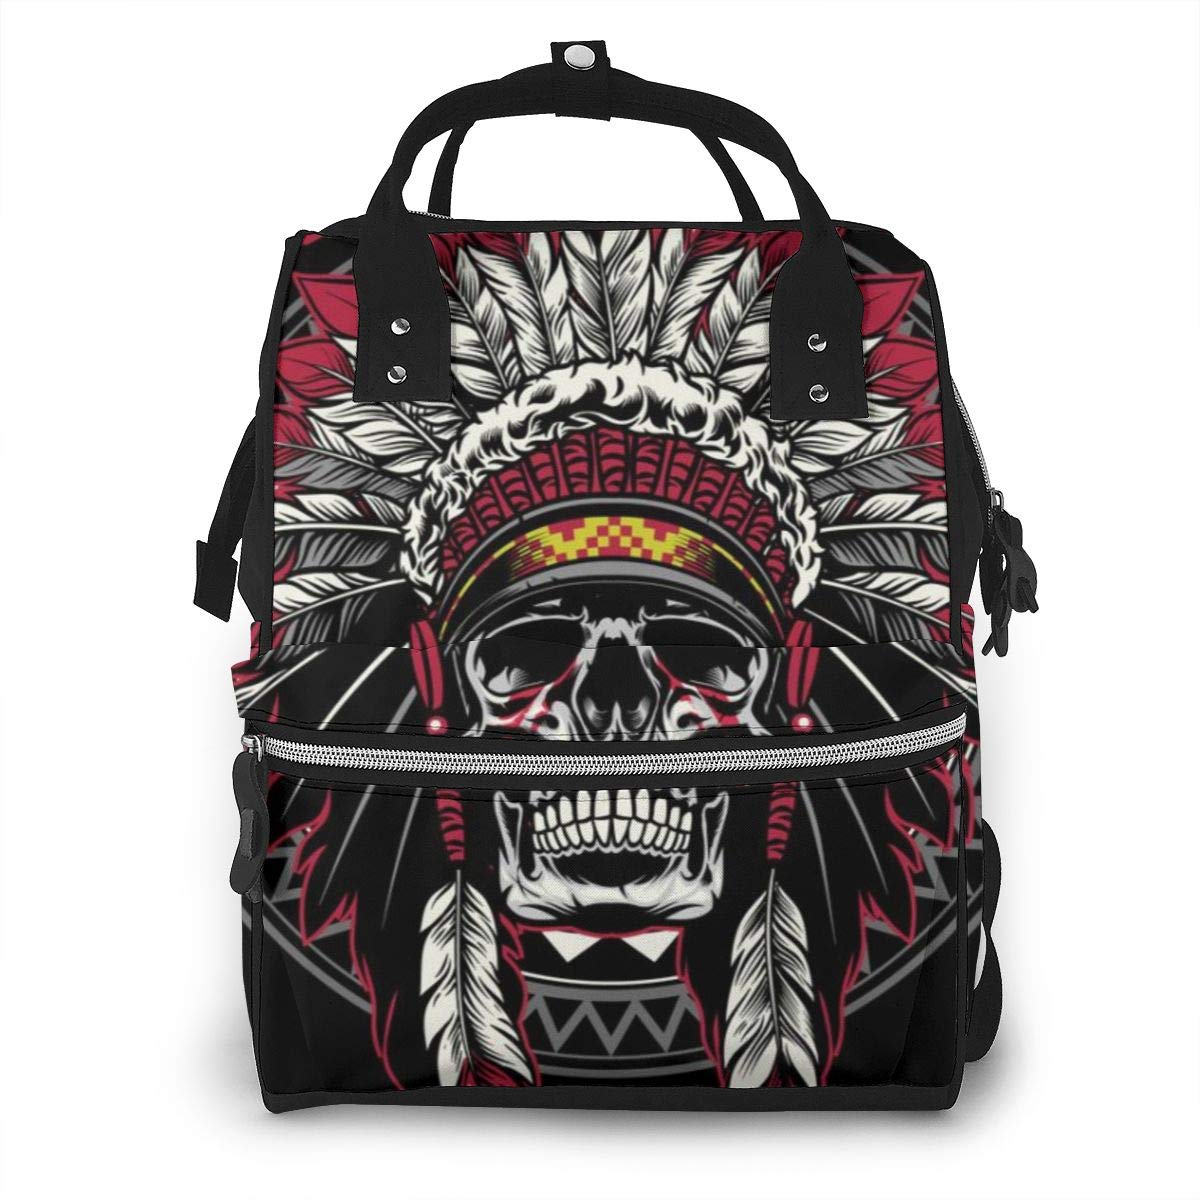 Skull of Native American Diaper Bag Mom Dad Travel Backpack Multifunction Waterproof Canvas Large Capacity Baby Bag Maternity Nappy Bags for Baby Care